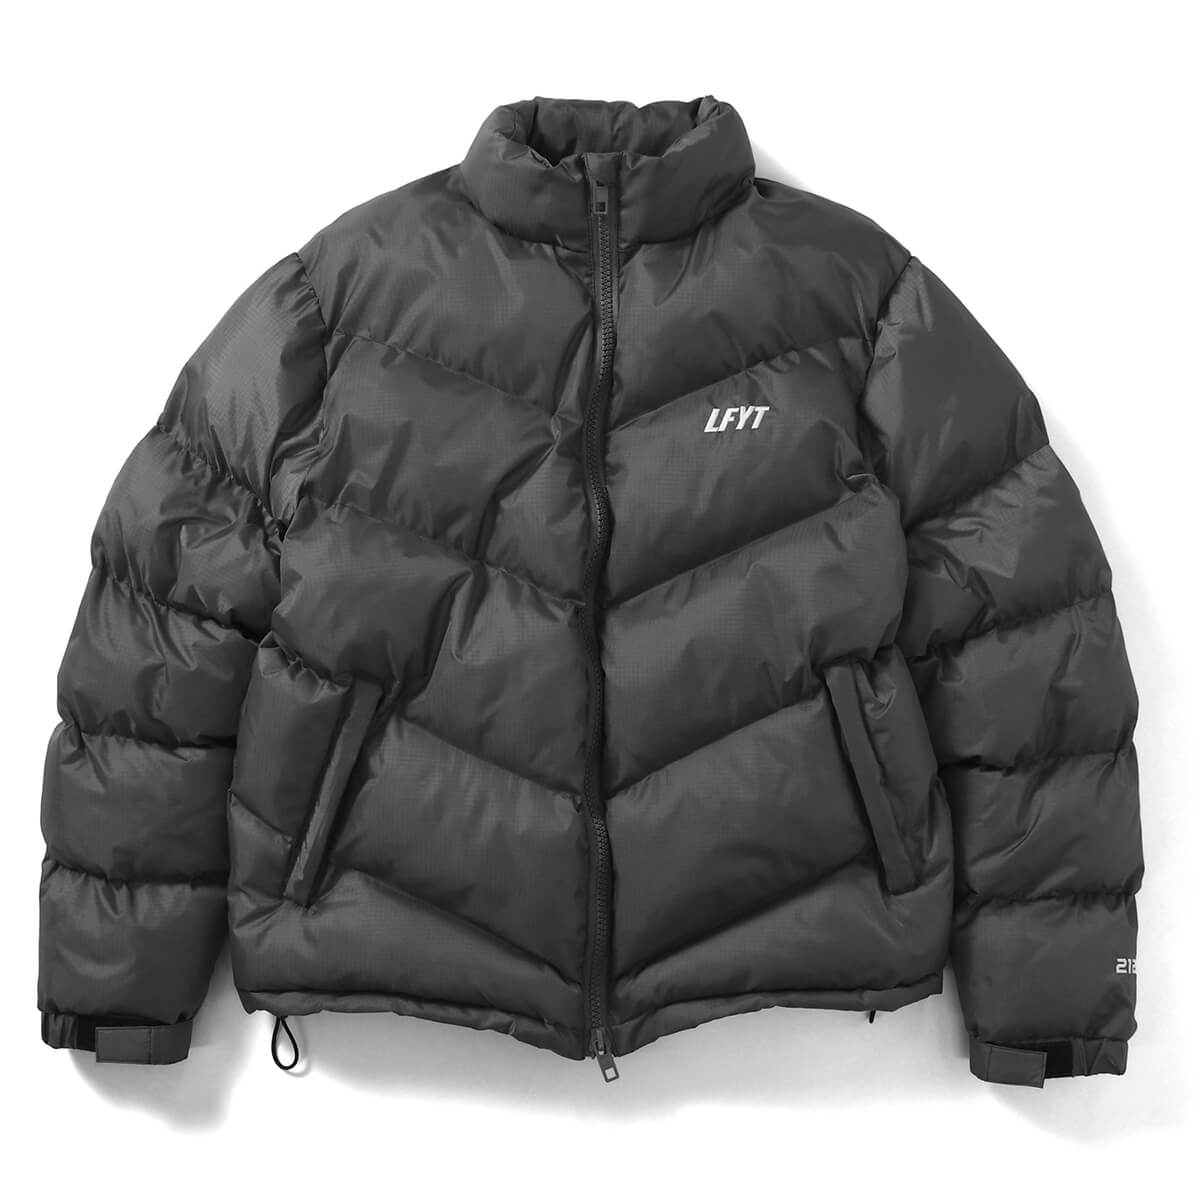 DIAGONAL PUFFER JACKET GRAY LA201010